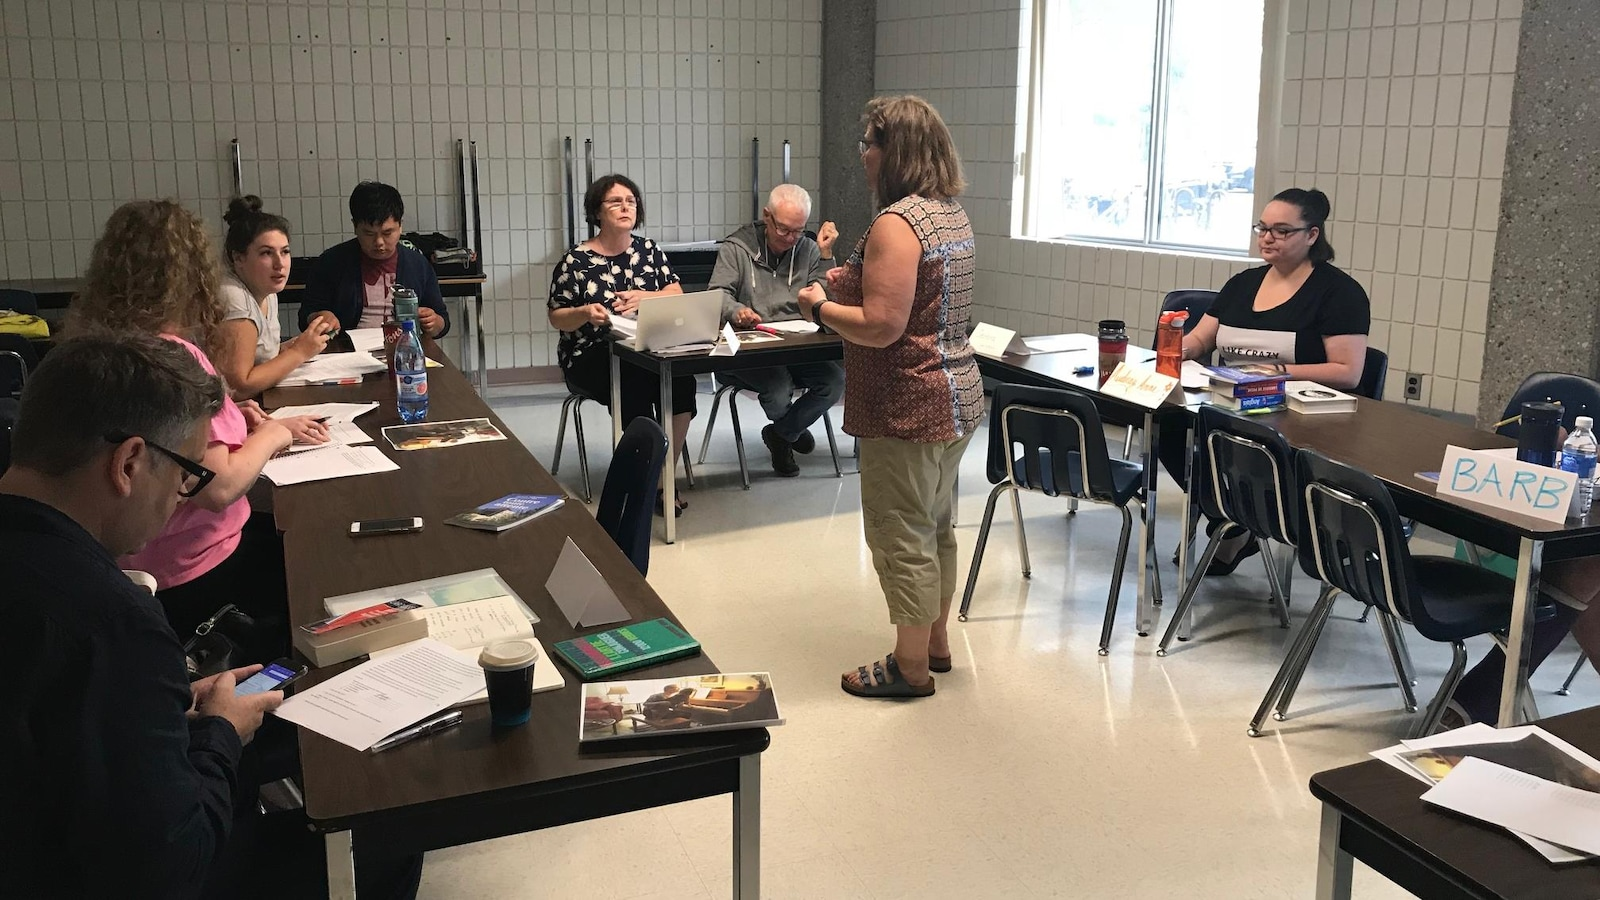 Classe de français pour adultes en immersion à l'Université de Regina